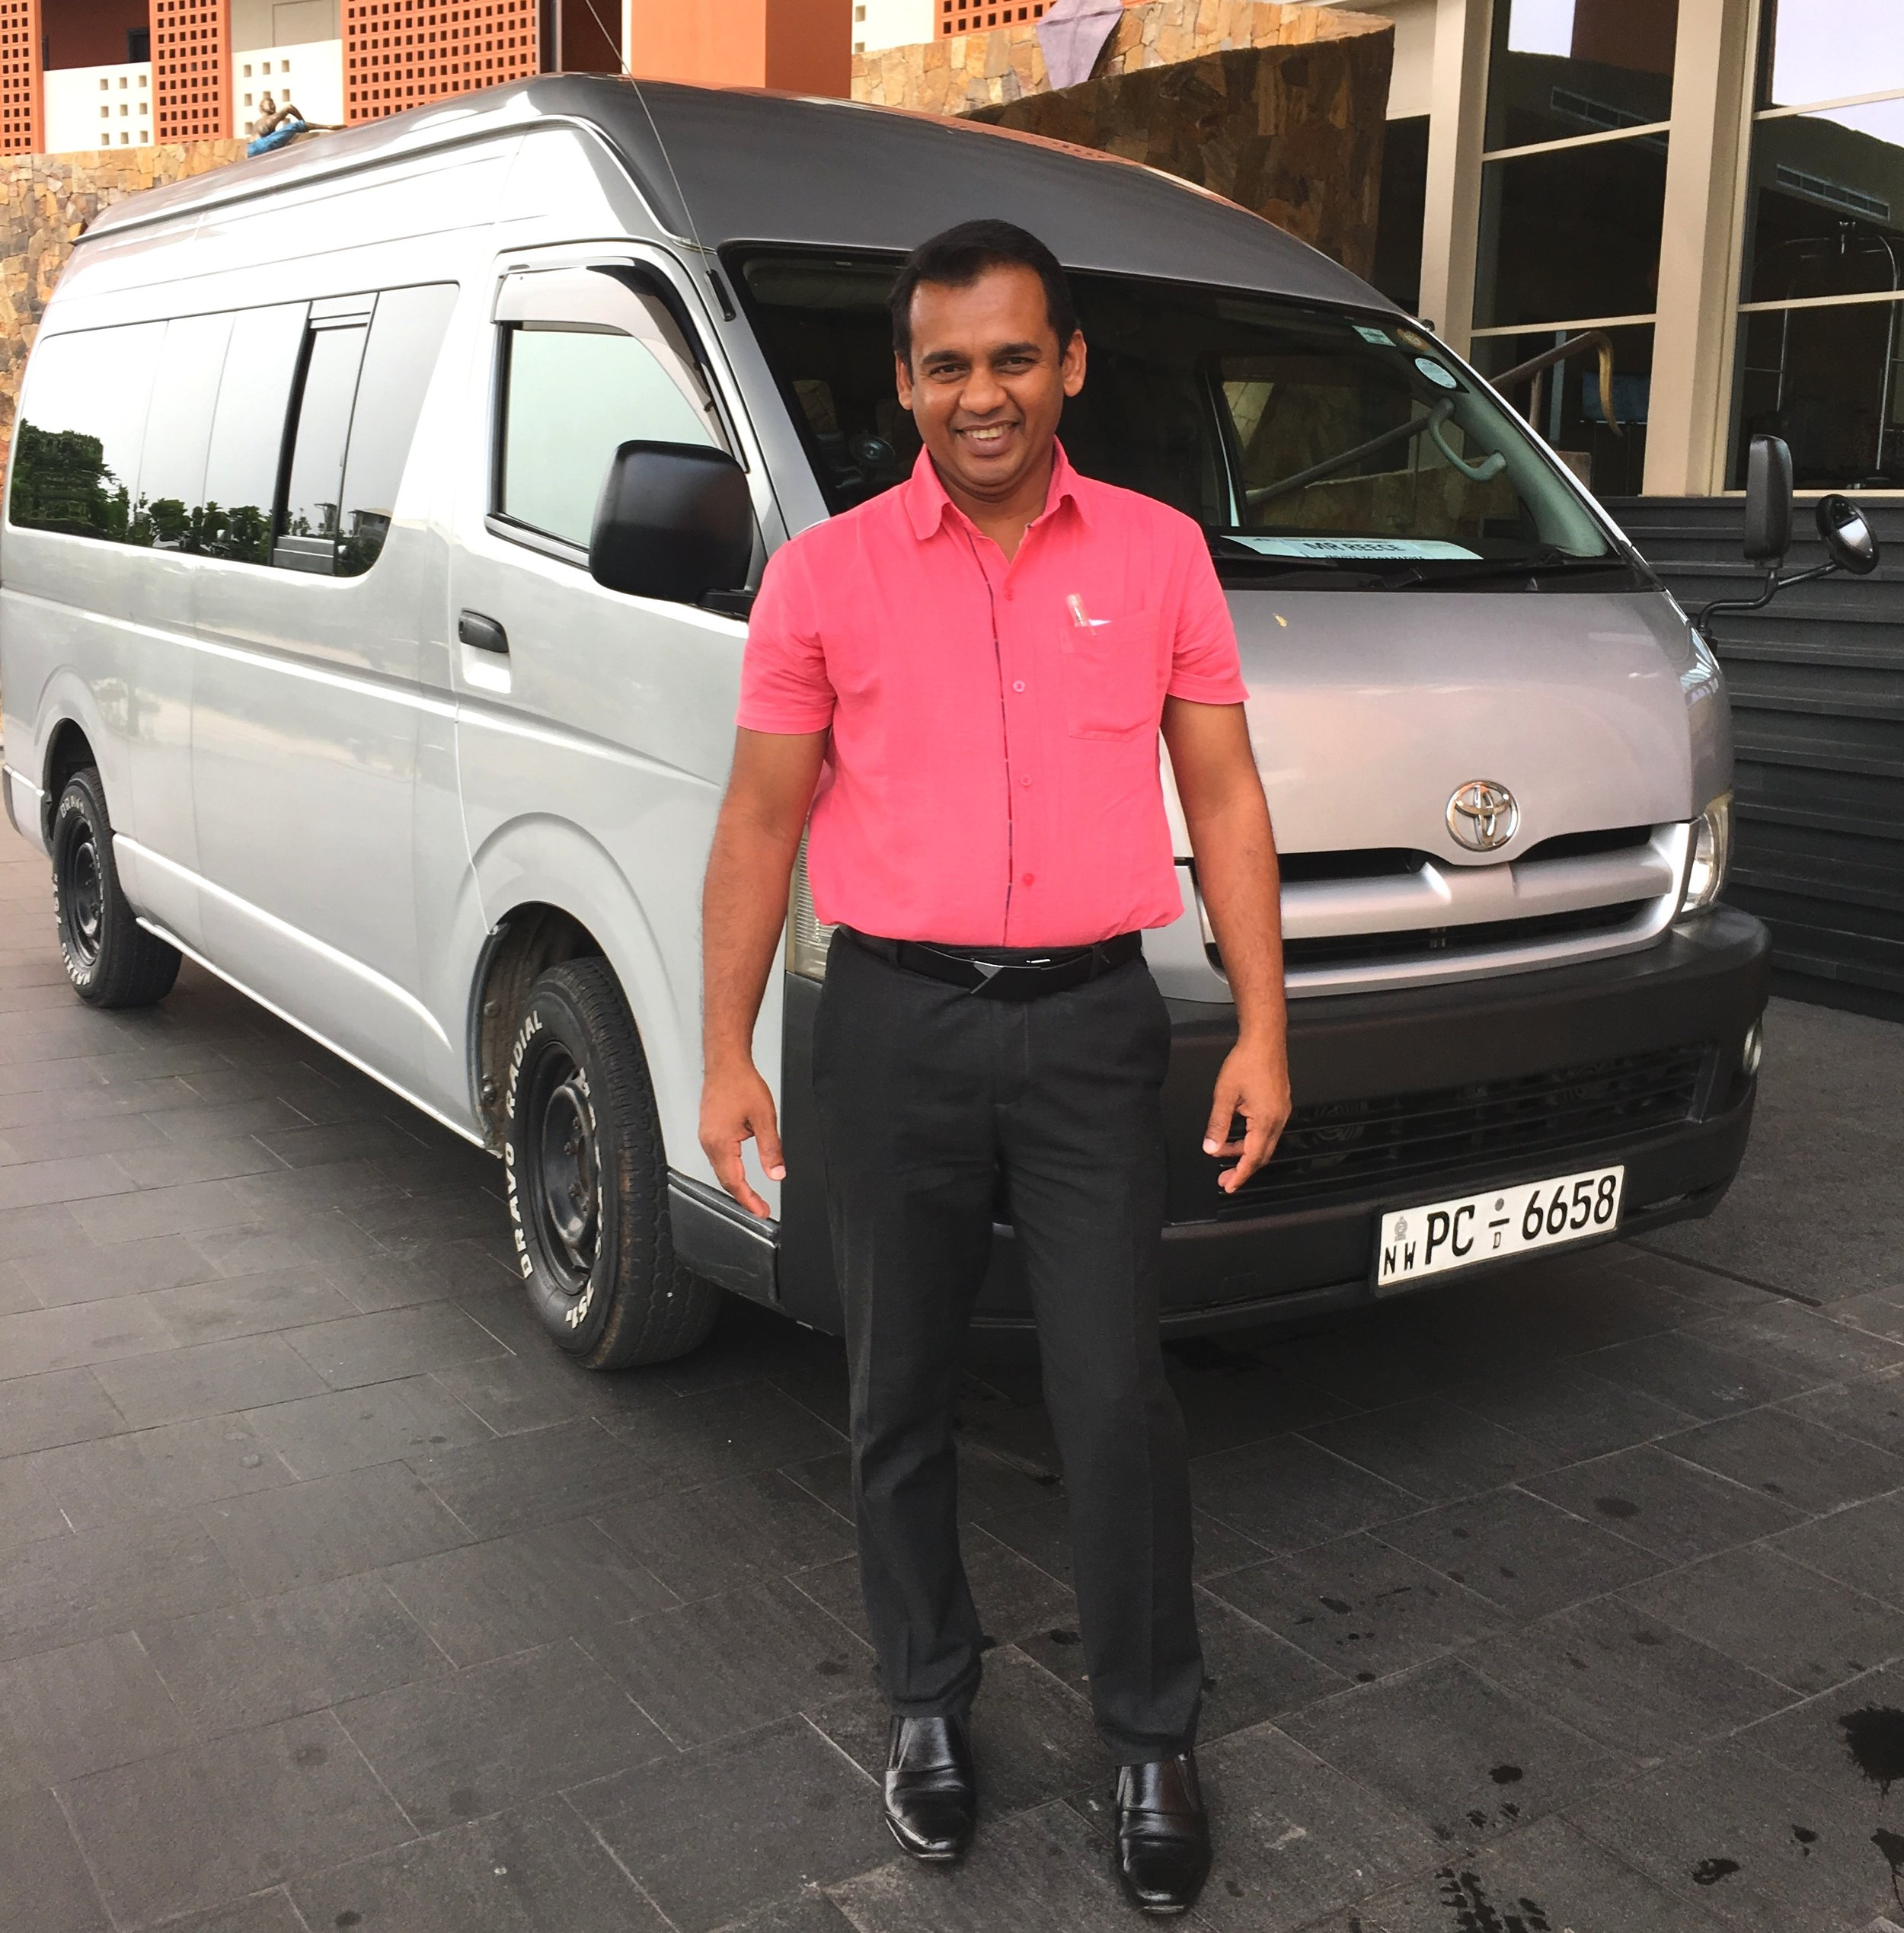 invite-to-paradise-sri-lanka-specialists-experts-travel-agent-tour-operator-chauffeur-guide-nishantha-vehicle-van-luxury.jpg